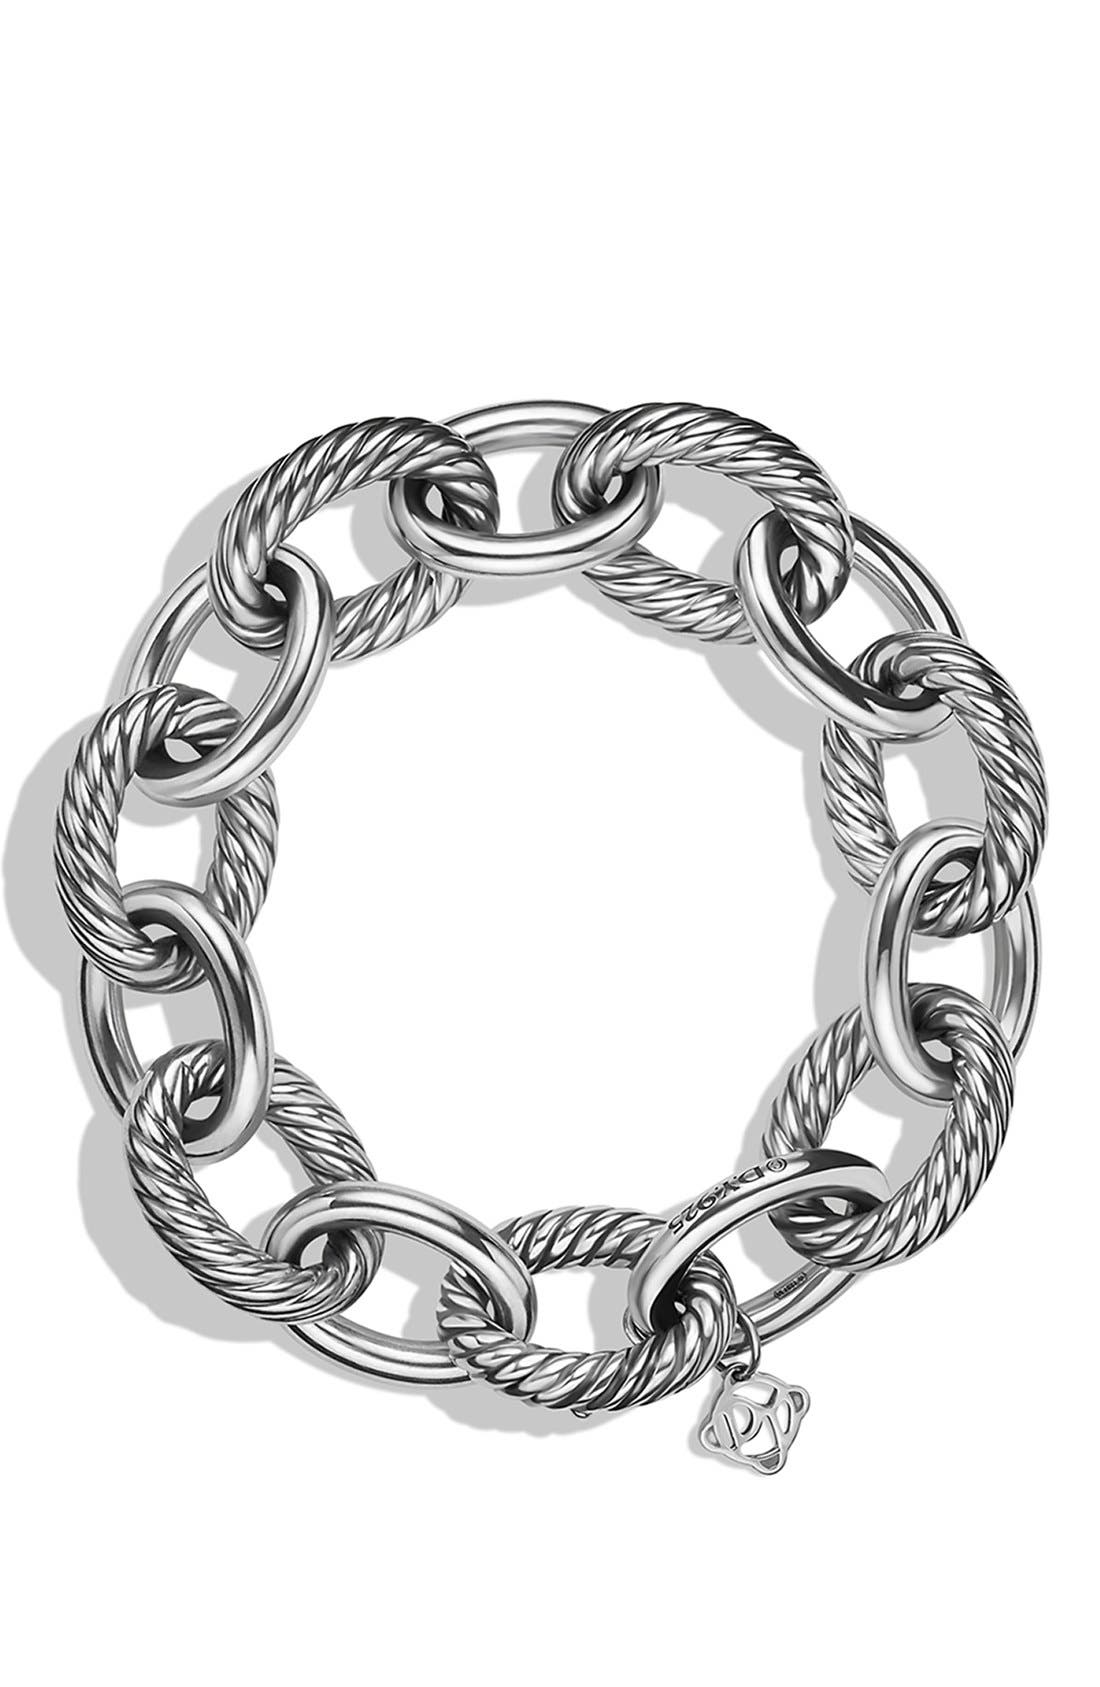 Alternate Image 2  - David Yurman 'Oval' Extra Large Link Bracelet